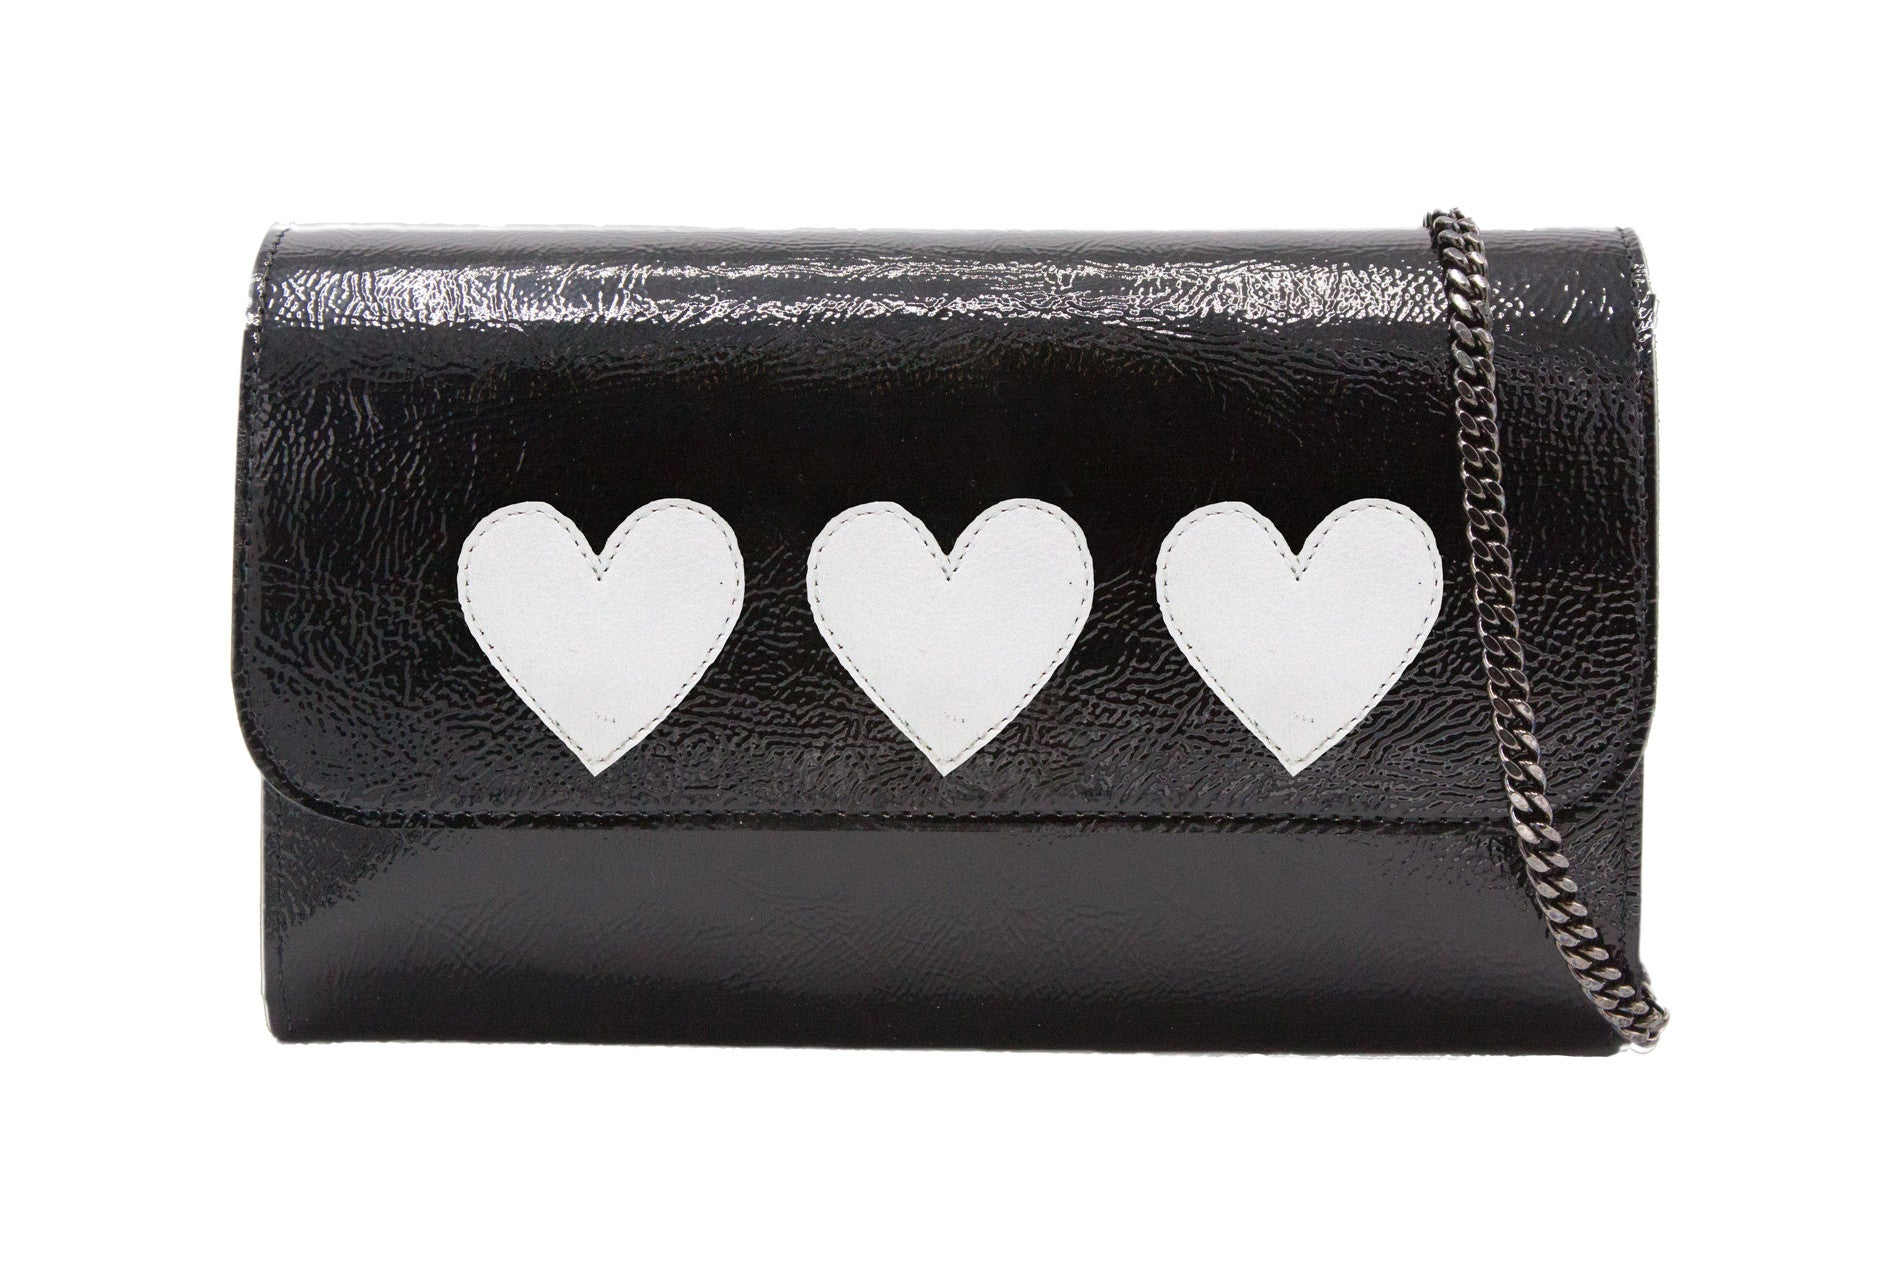 Mich Shoulder Bag Cracked Black Patent Leather w/ 3 White Heart